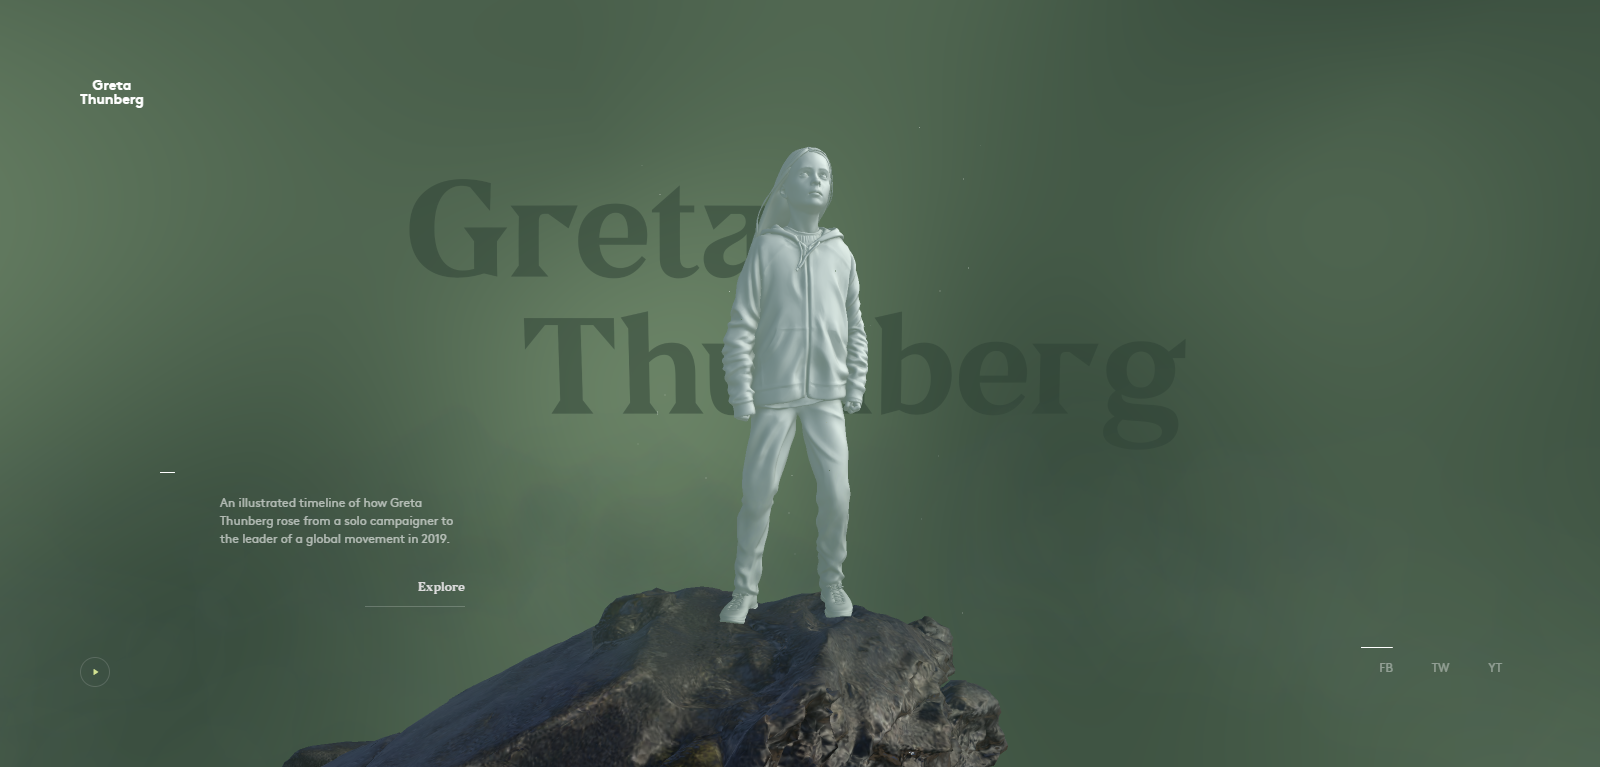 greta thunberg new creative website design